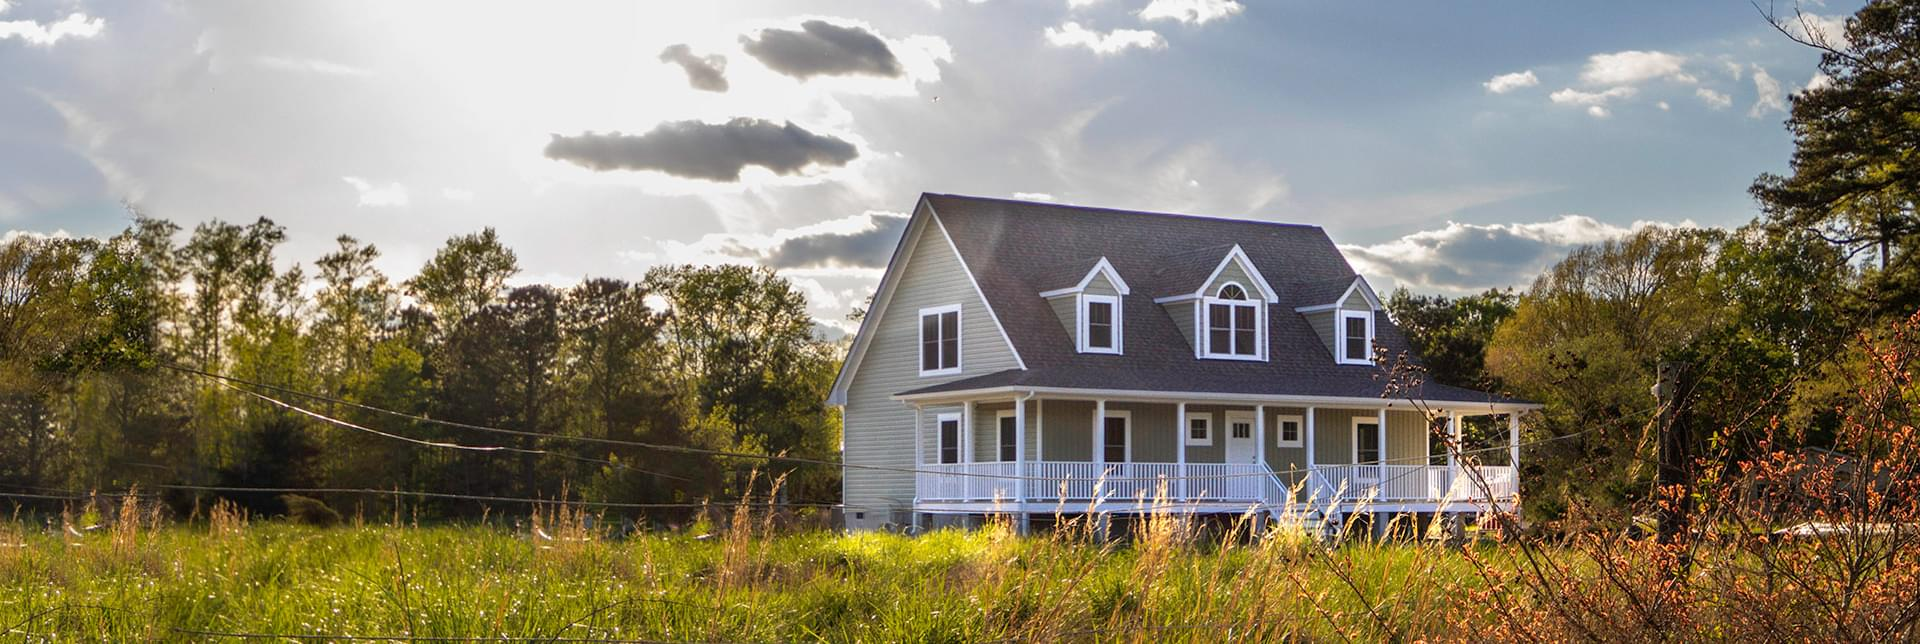 New Homes in Person County NC